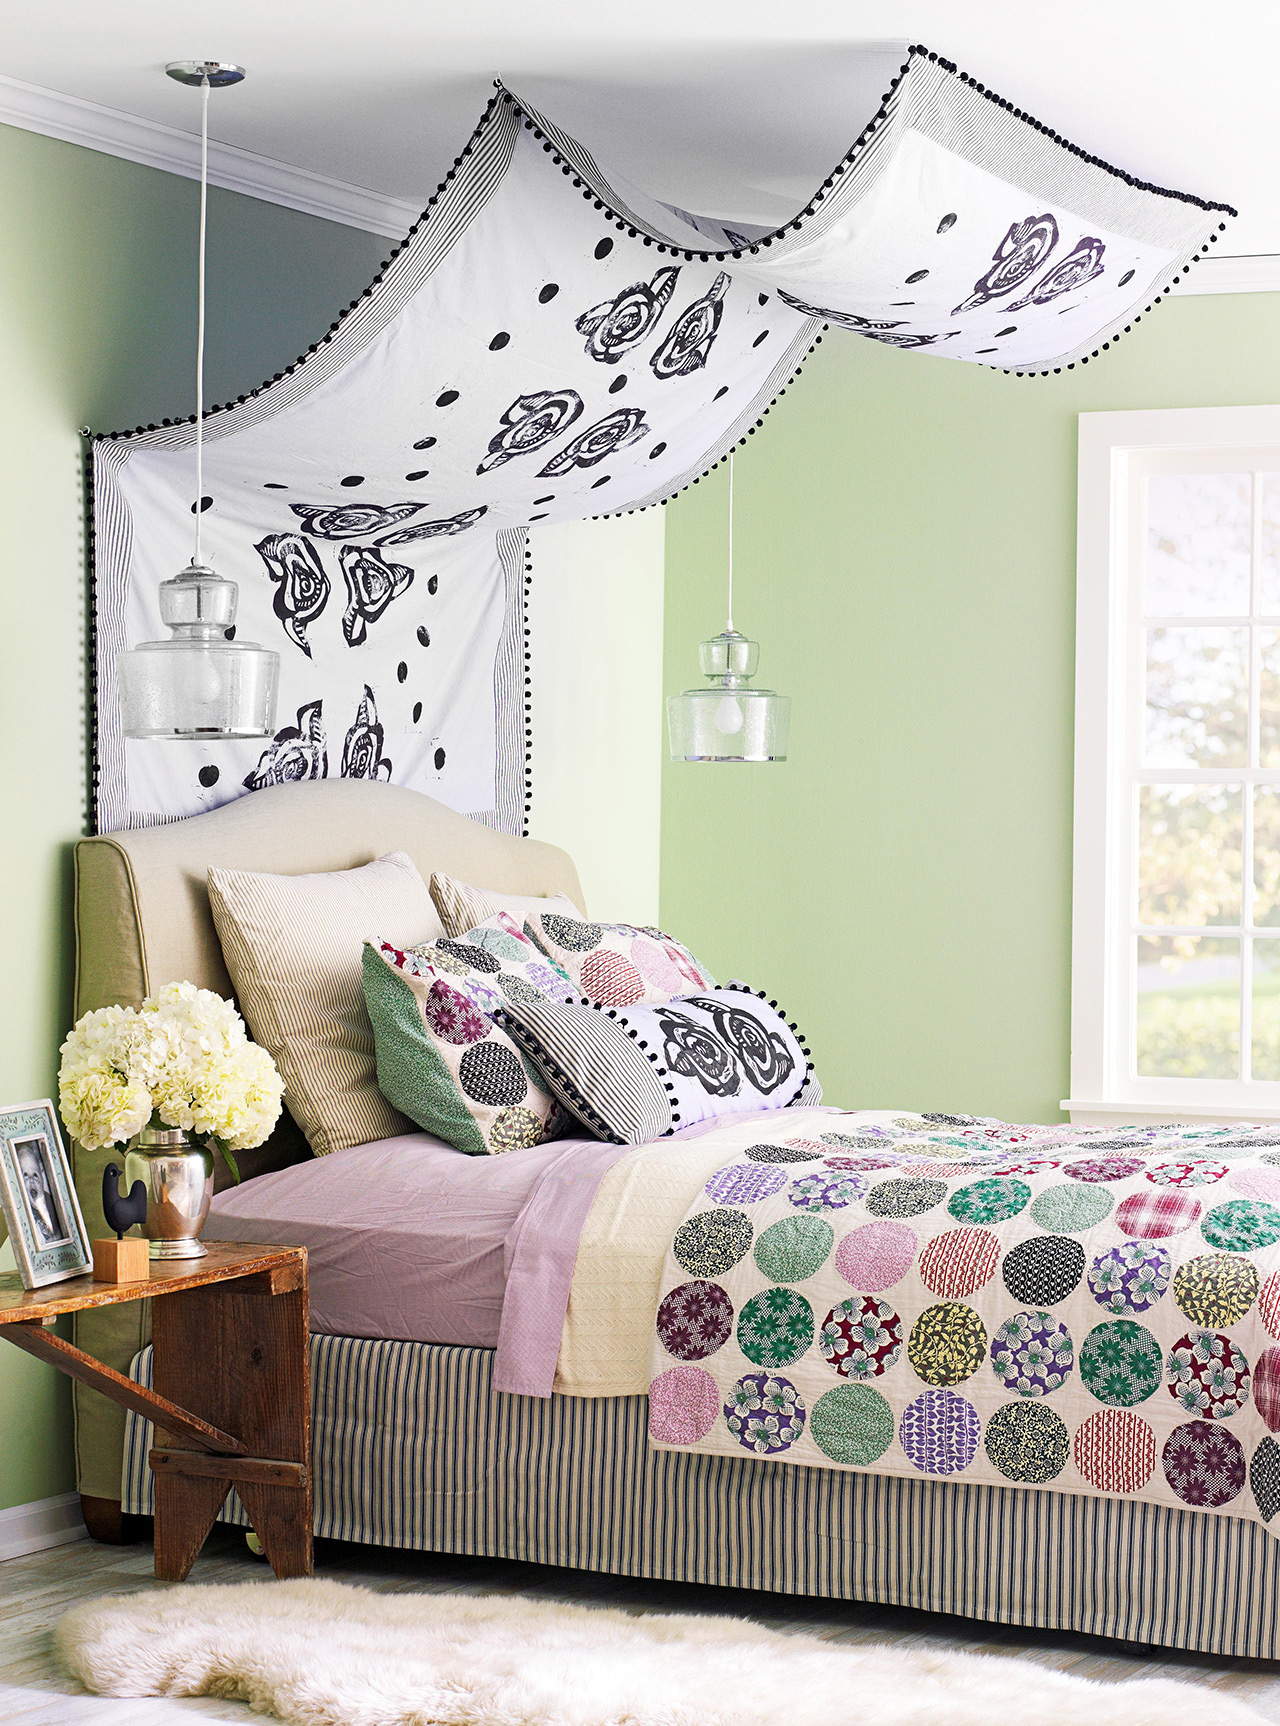 sheet as bed canopy green walls